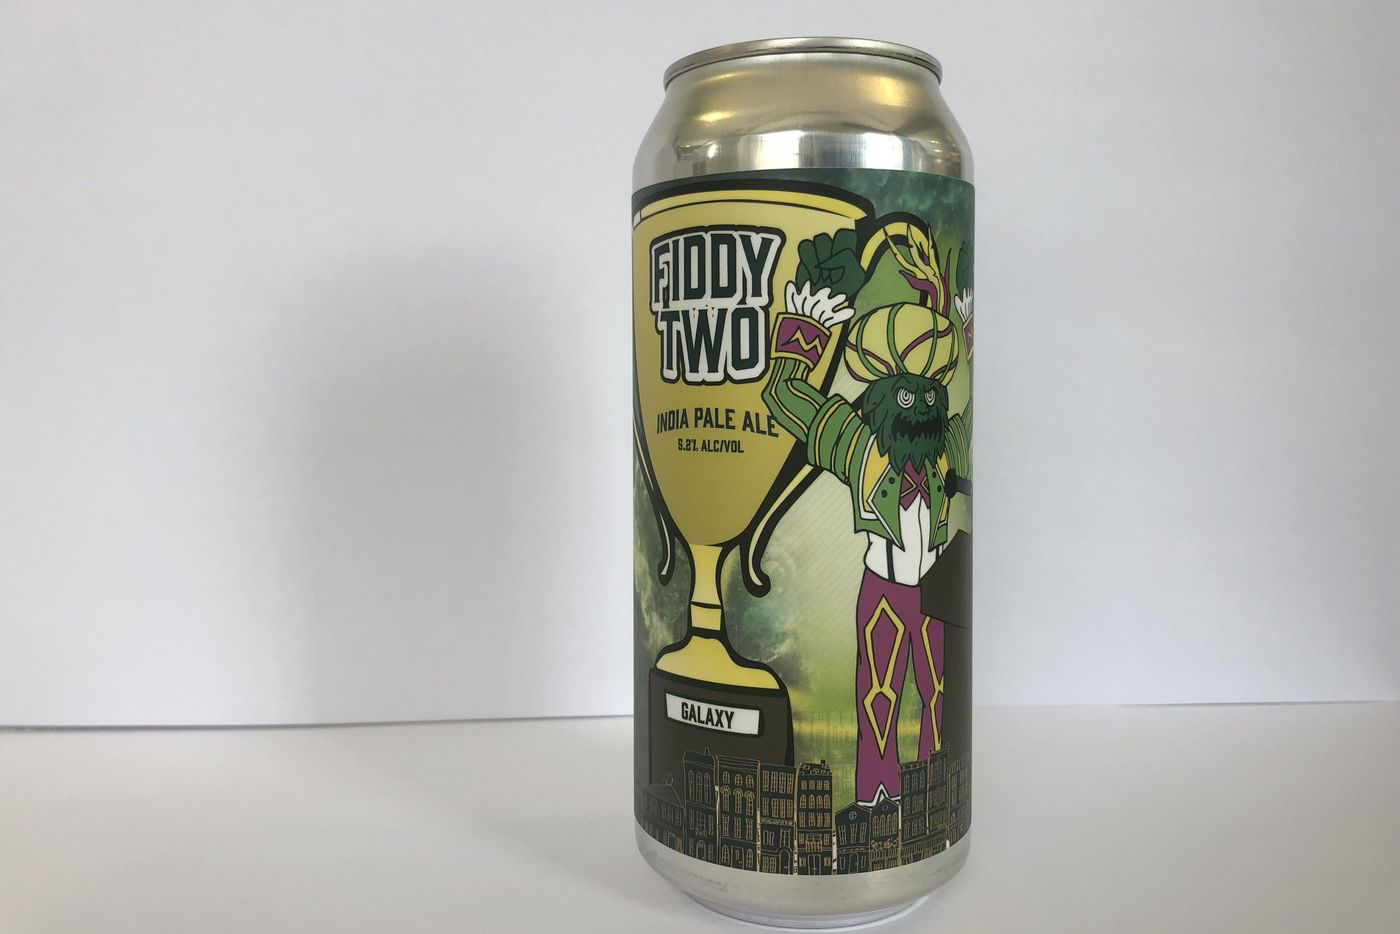 Special 'Fiddy Two' beer to kick off the Eagles season